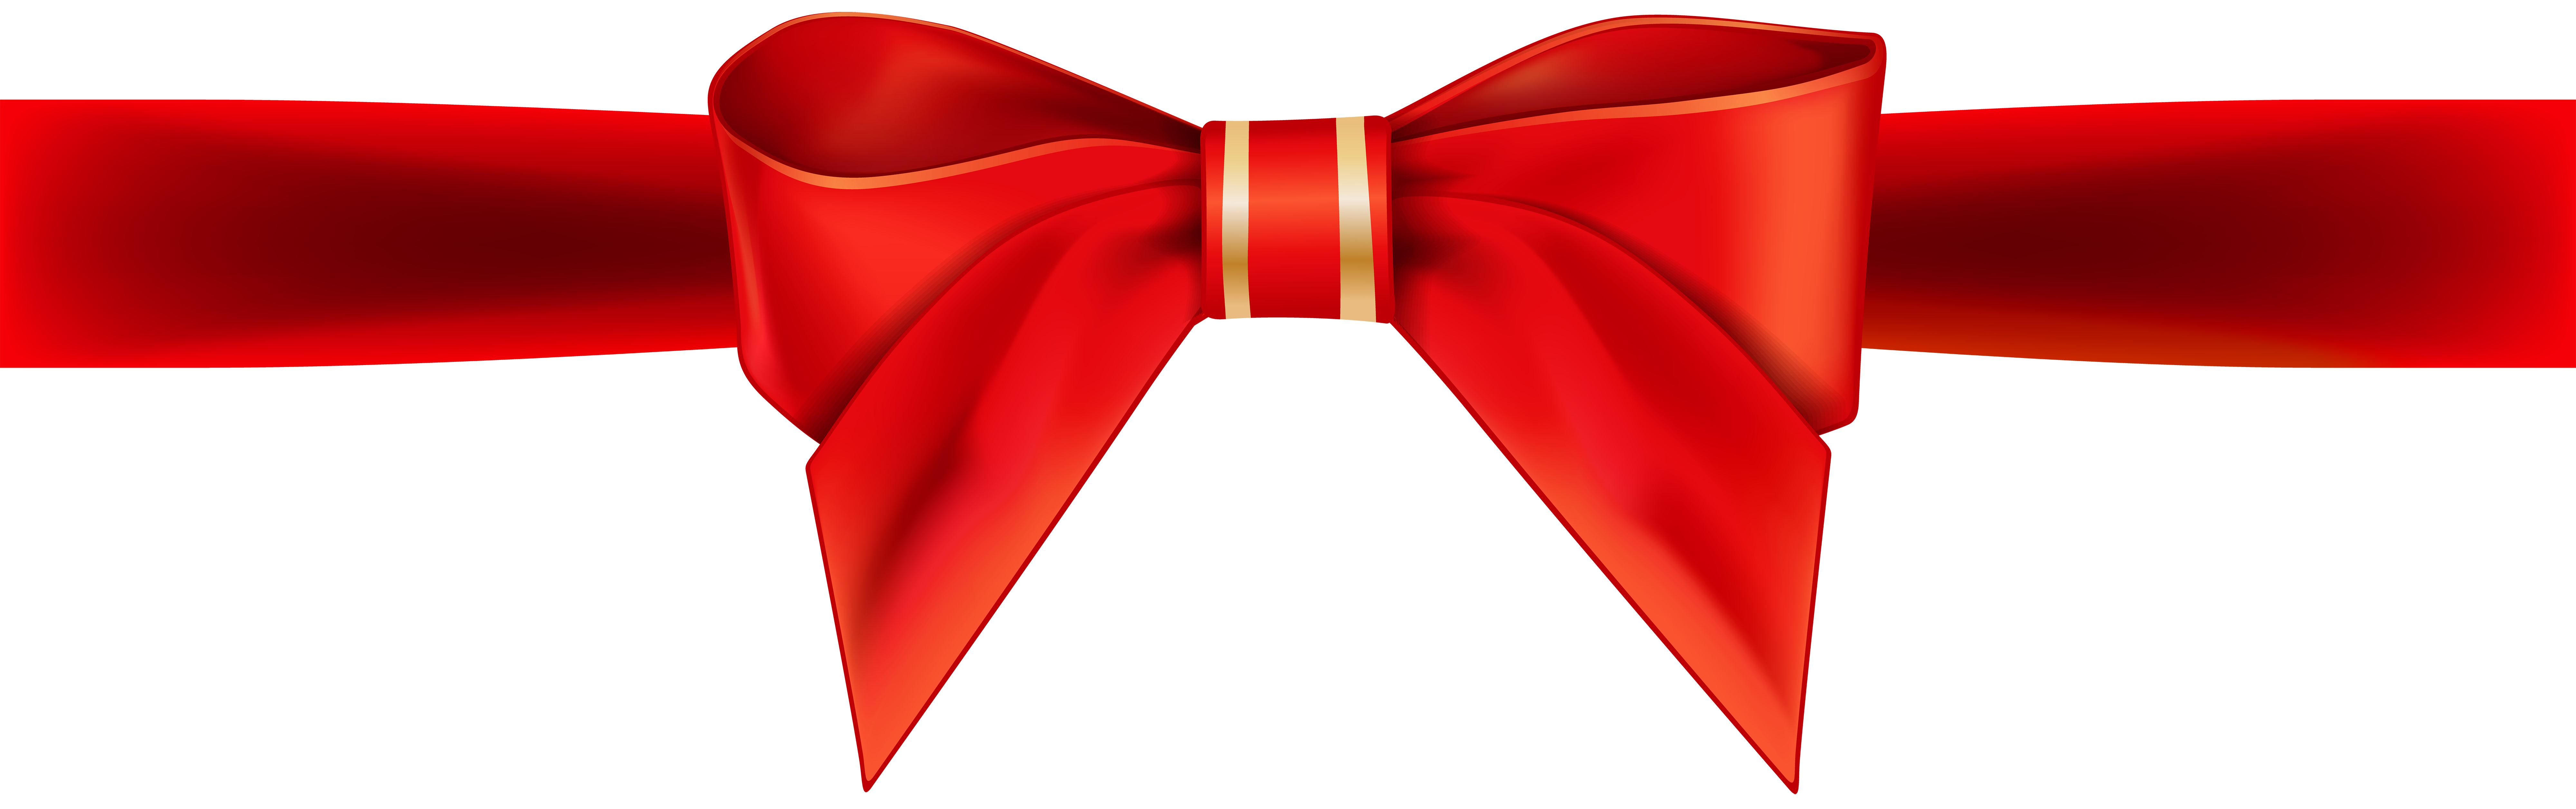 Coloring clipart tie. Red ribbon bow transparent